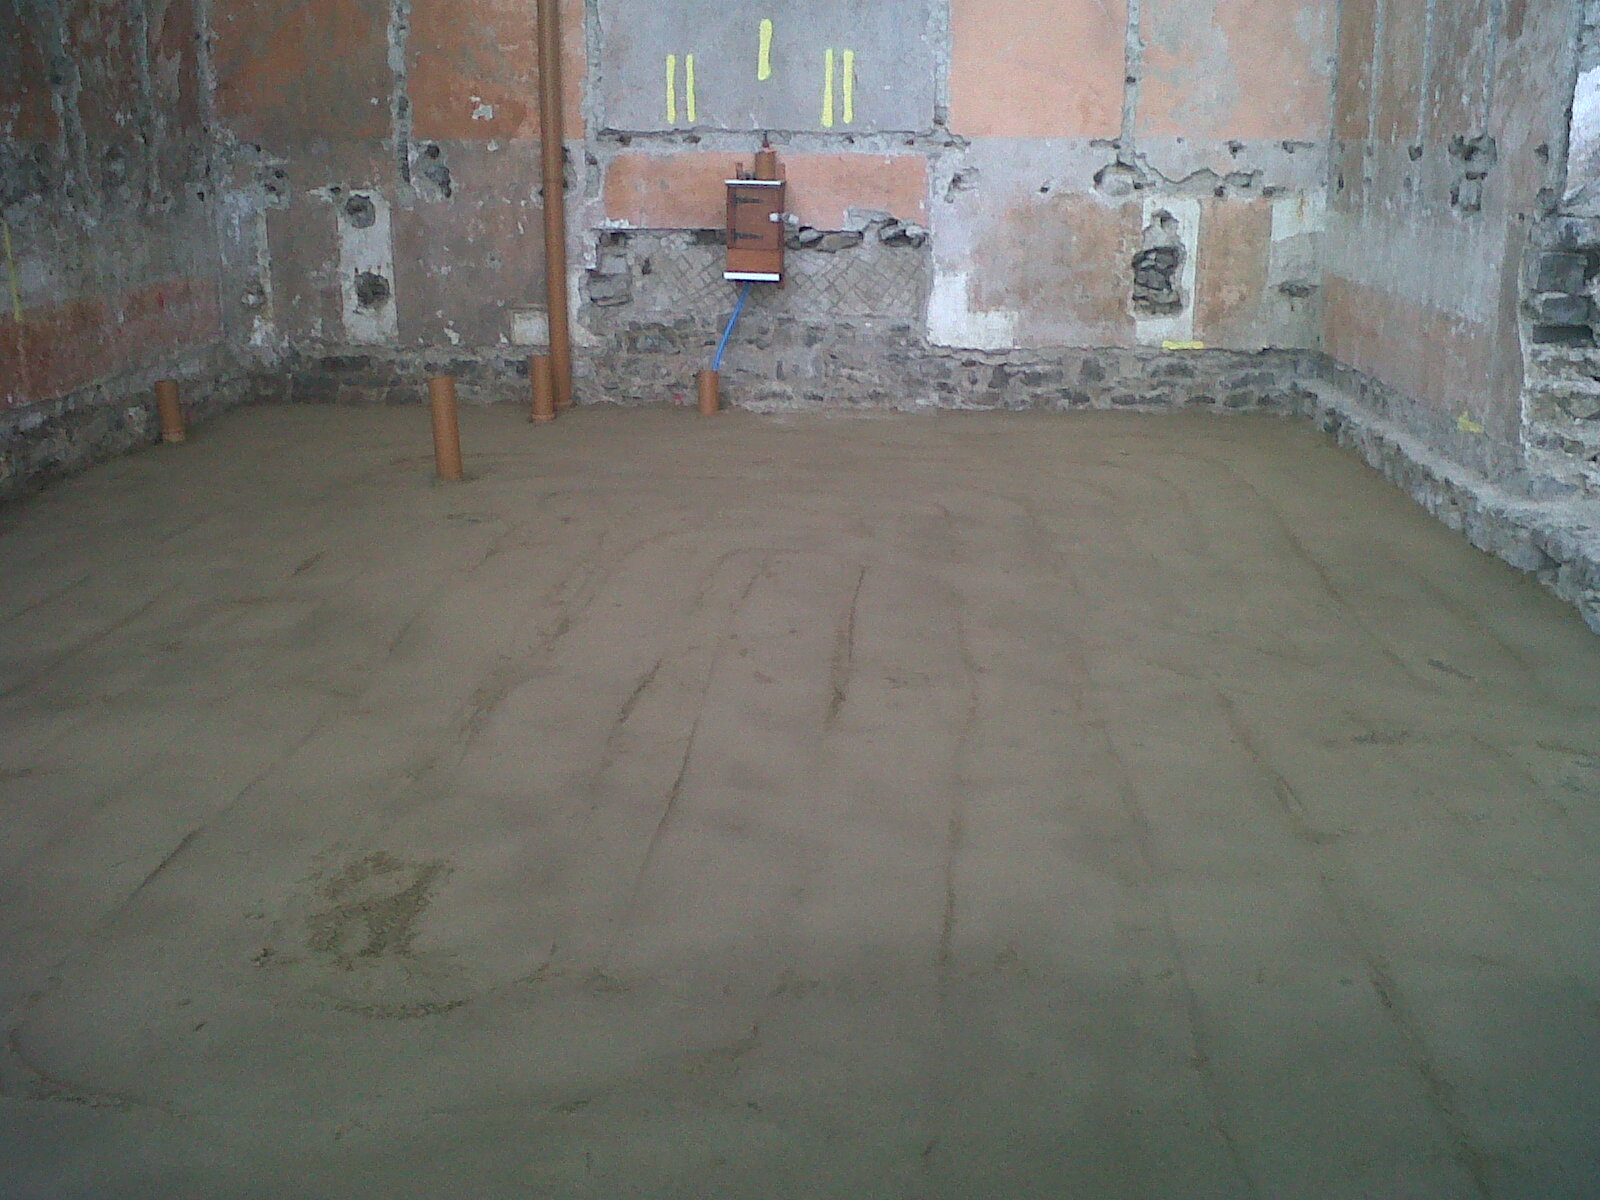 Amroth Project Ground Floor Slab Reinforcement Radon